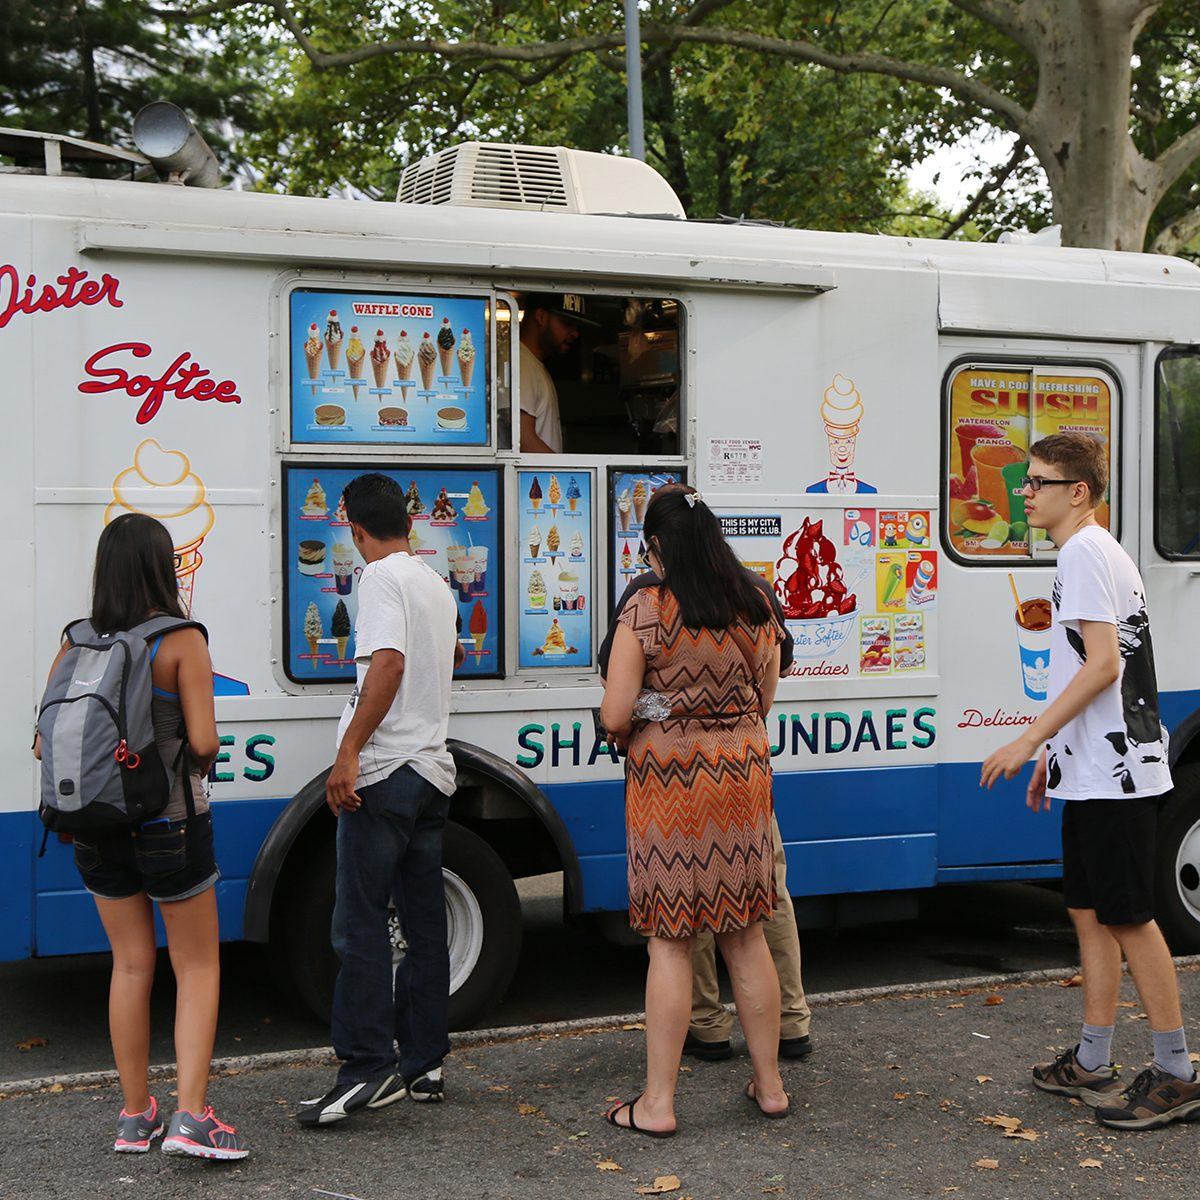 Ice cream truck in Queens. Mister Softee is a United States-based ice cream truck franchiser popular in the Northeast founded in 1956